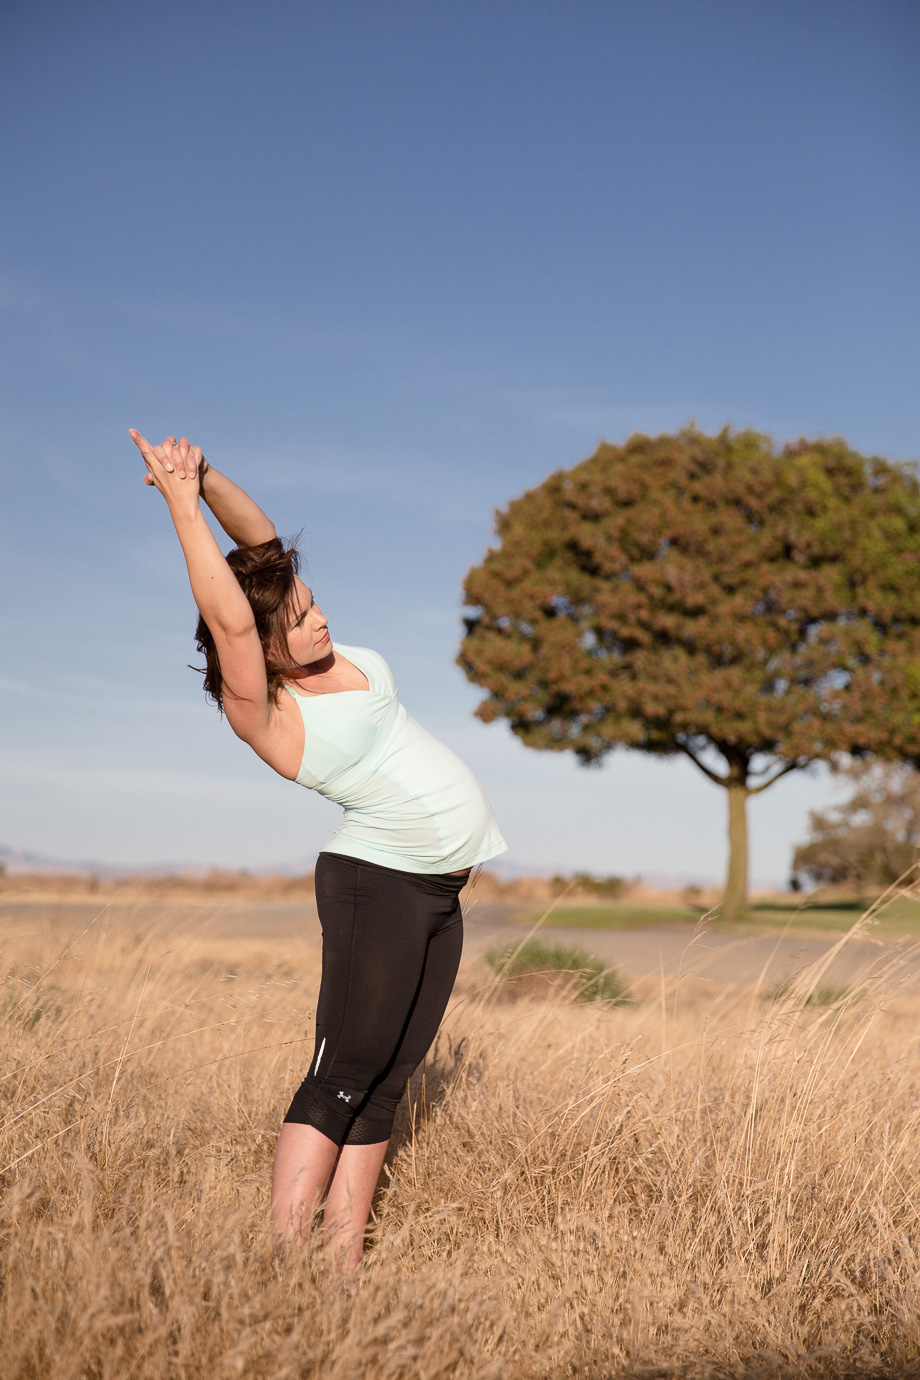 Pregnant expectant mother doing yoga in grassy field with tree